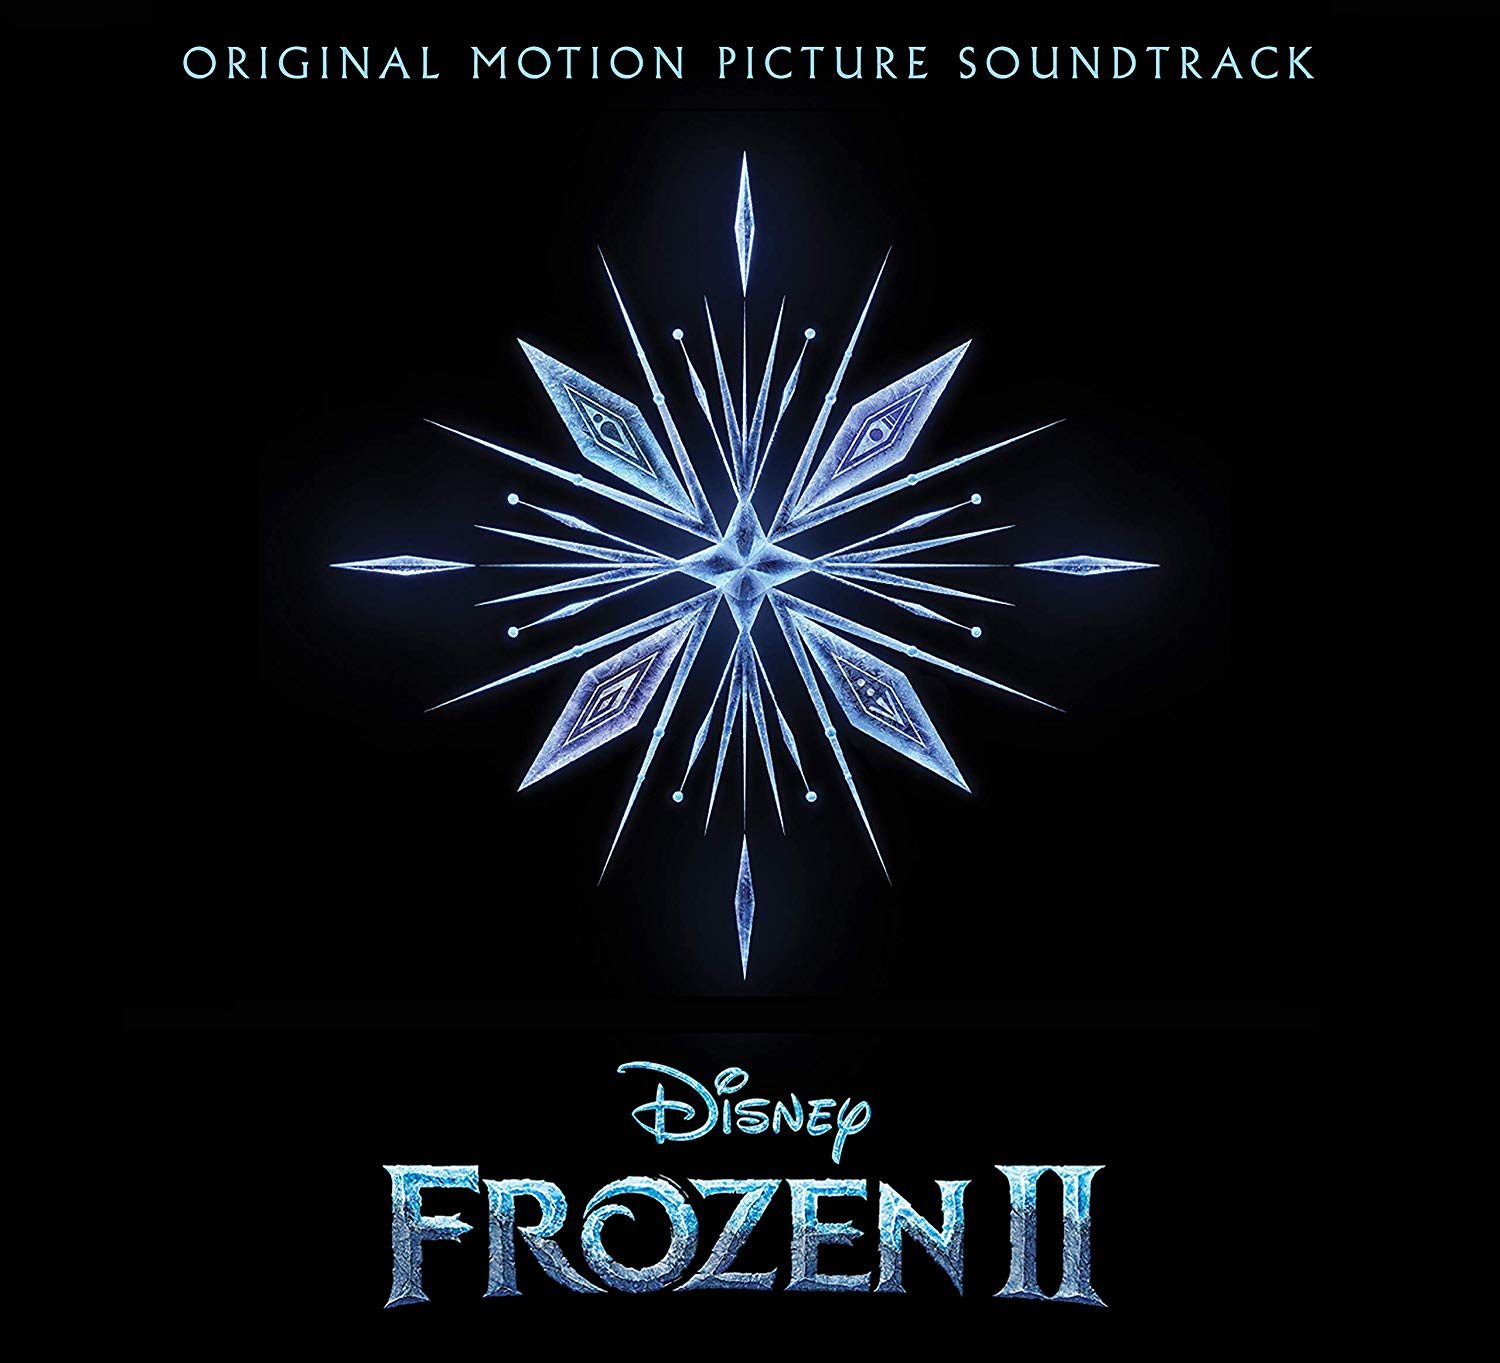 Frozen II (soundtrack)